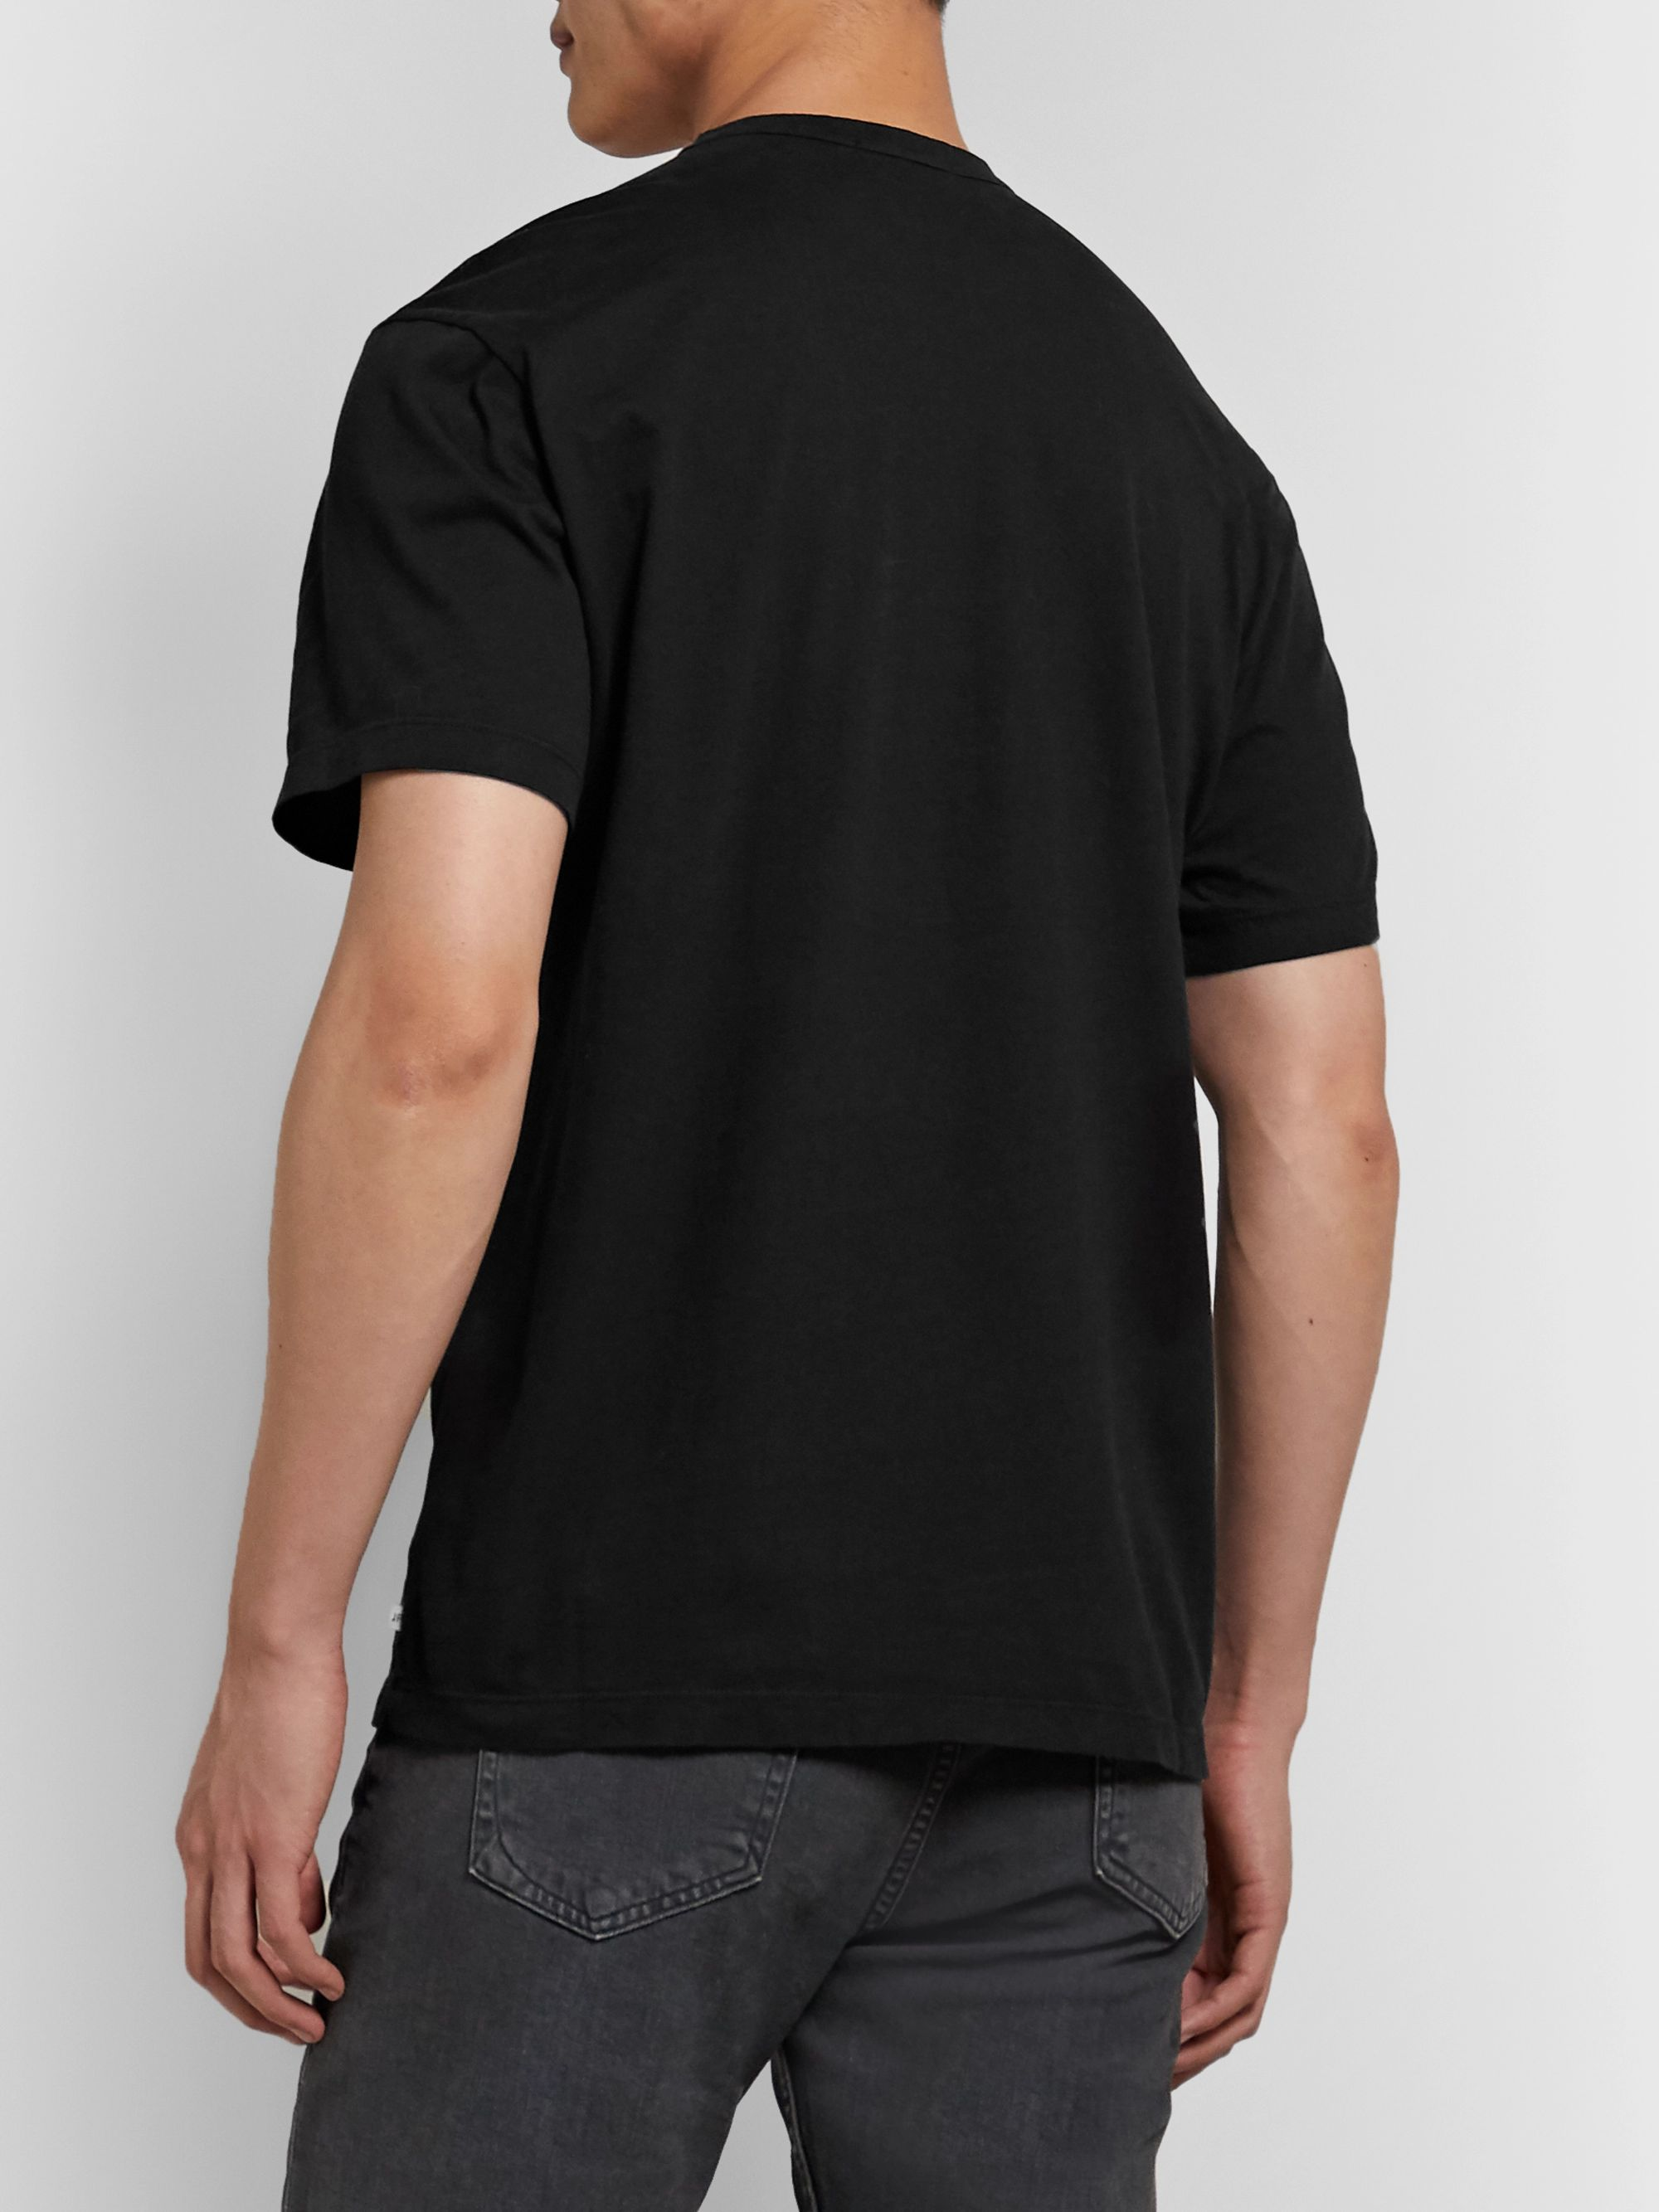 James Perse Supima Cotton-Jersey T-Shirt